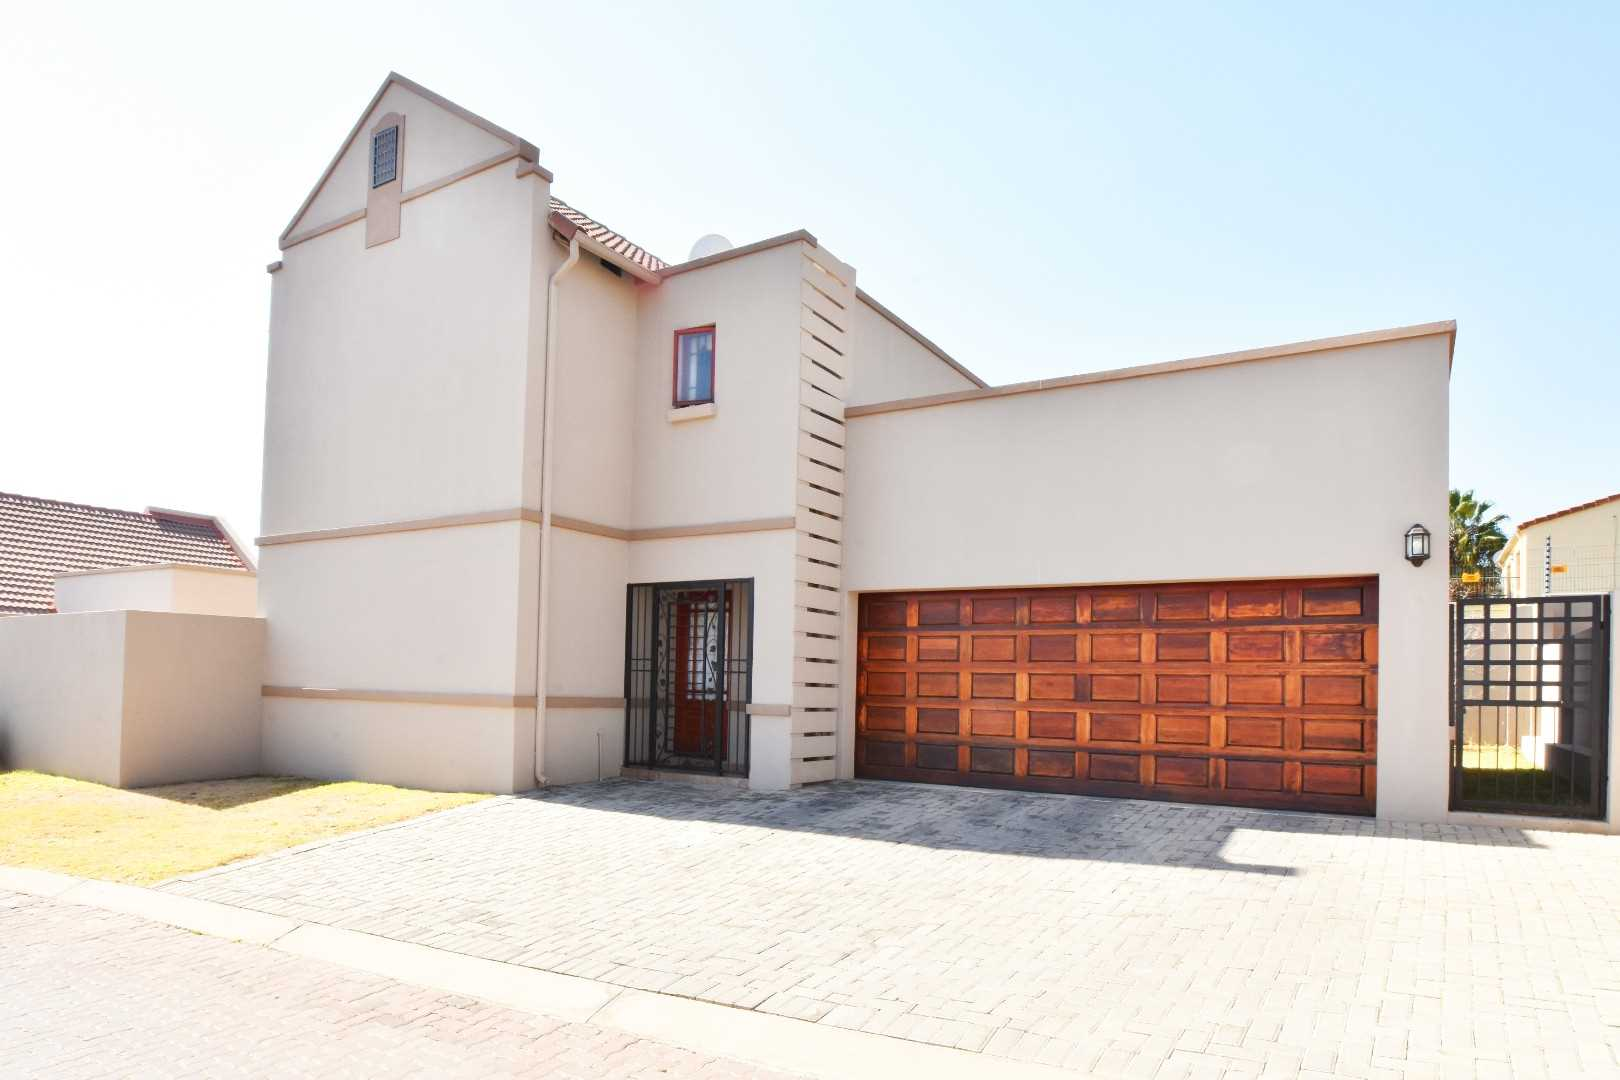 2 Bed, 2.5 Bath, Double Automated Garage